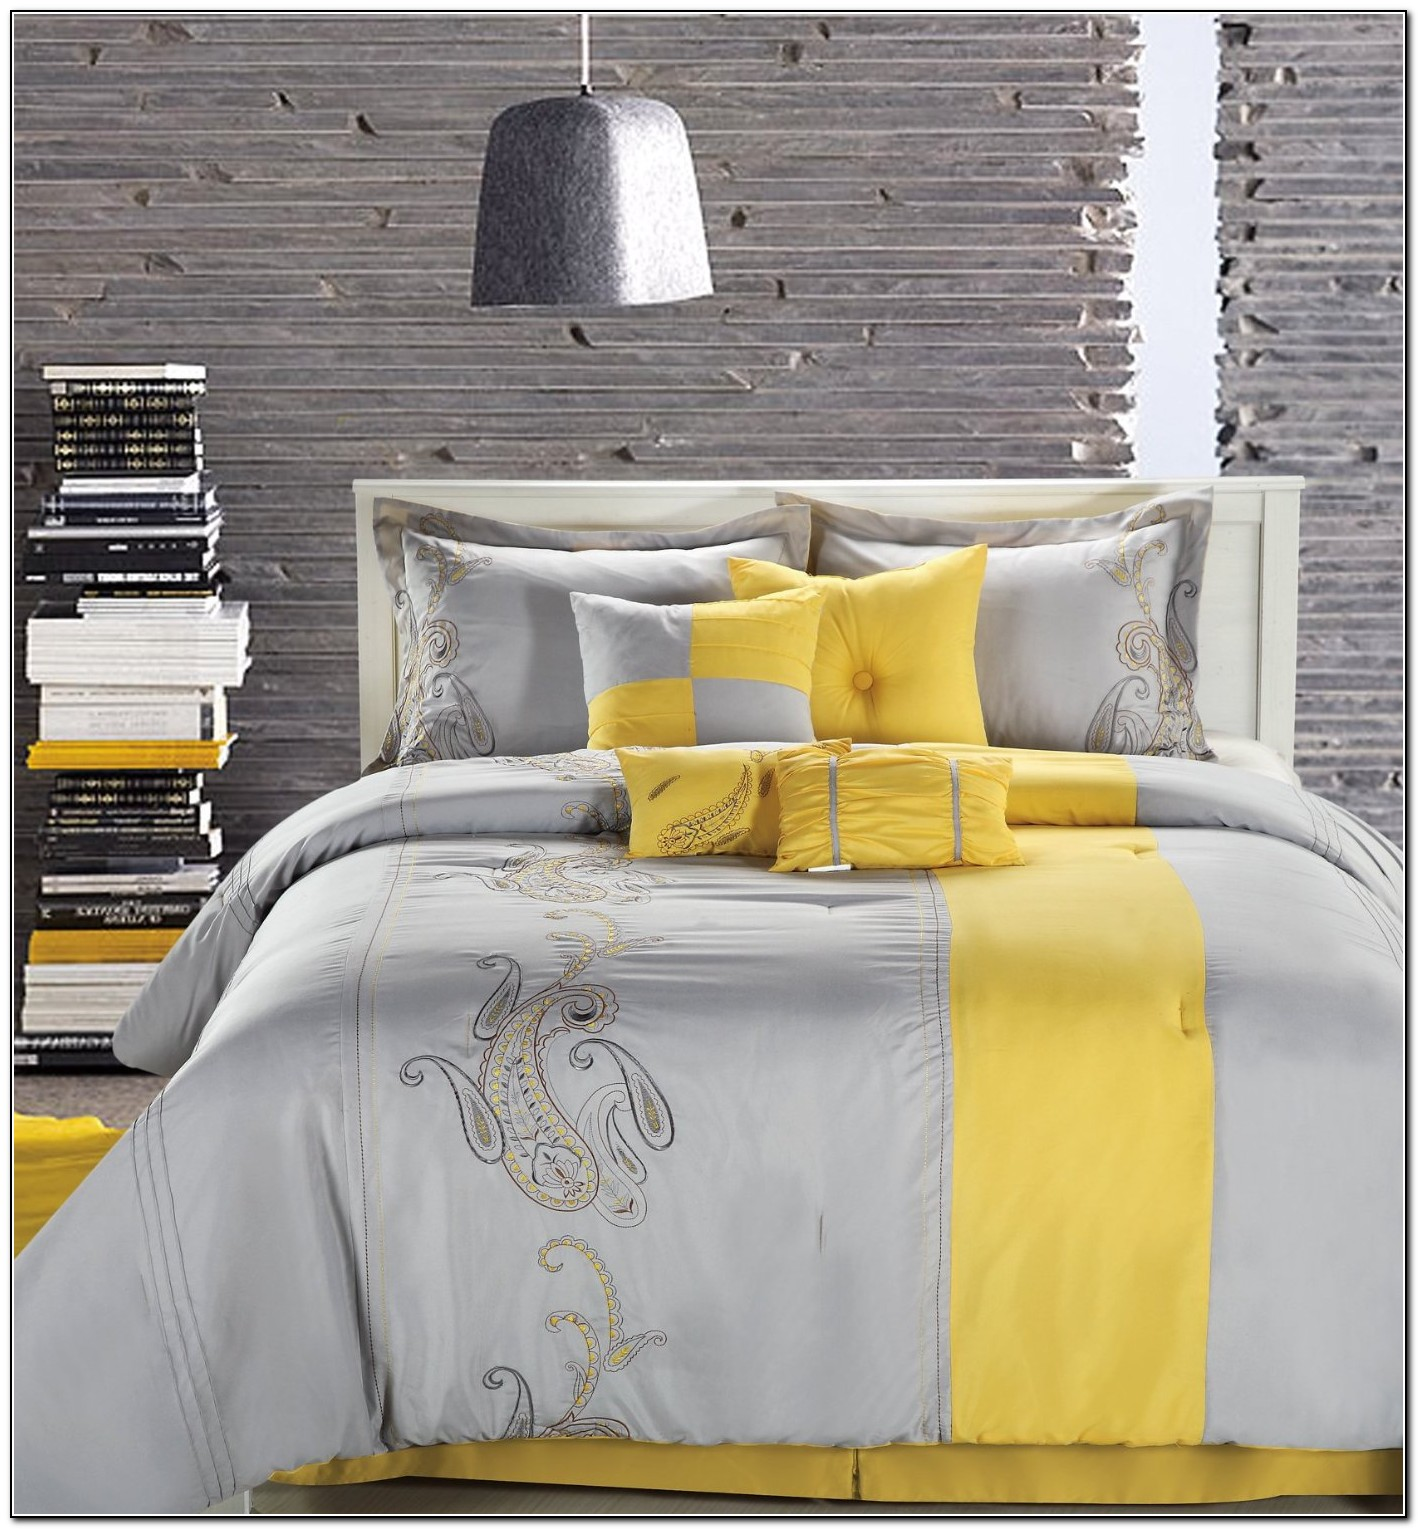 Gray and yellow bedding pinterest download page home Grey and yellow bedroom ideas pinterest